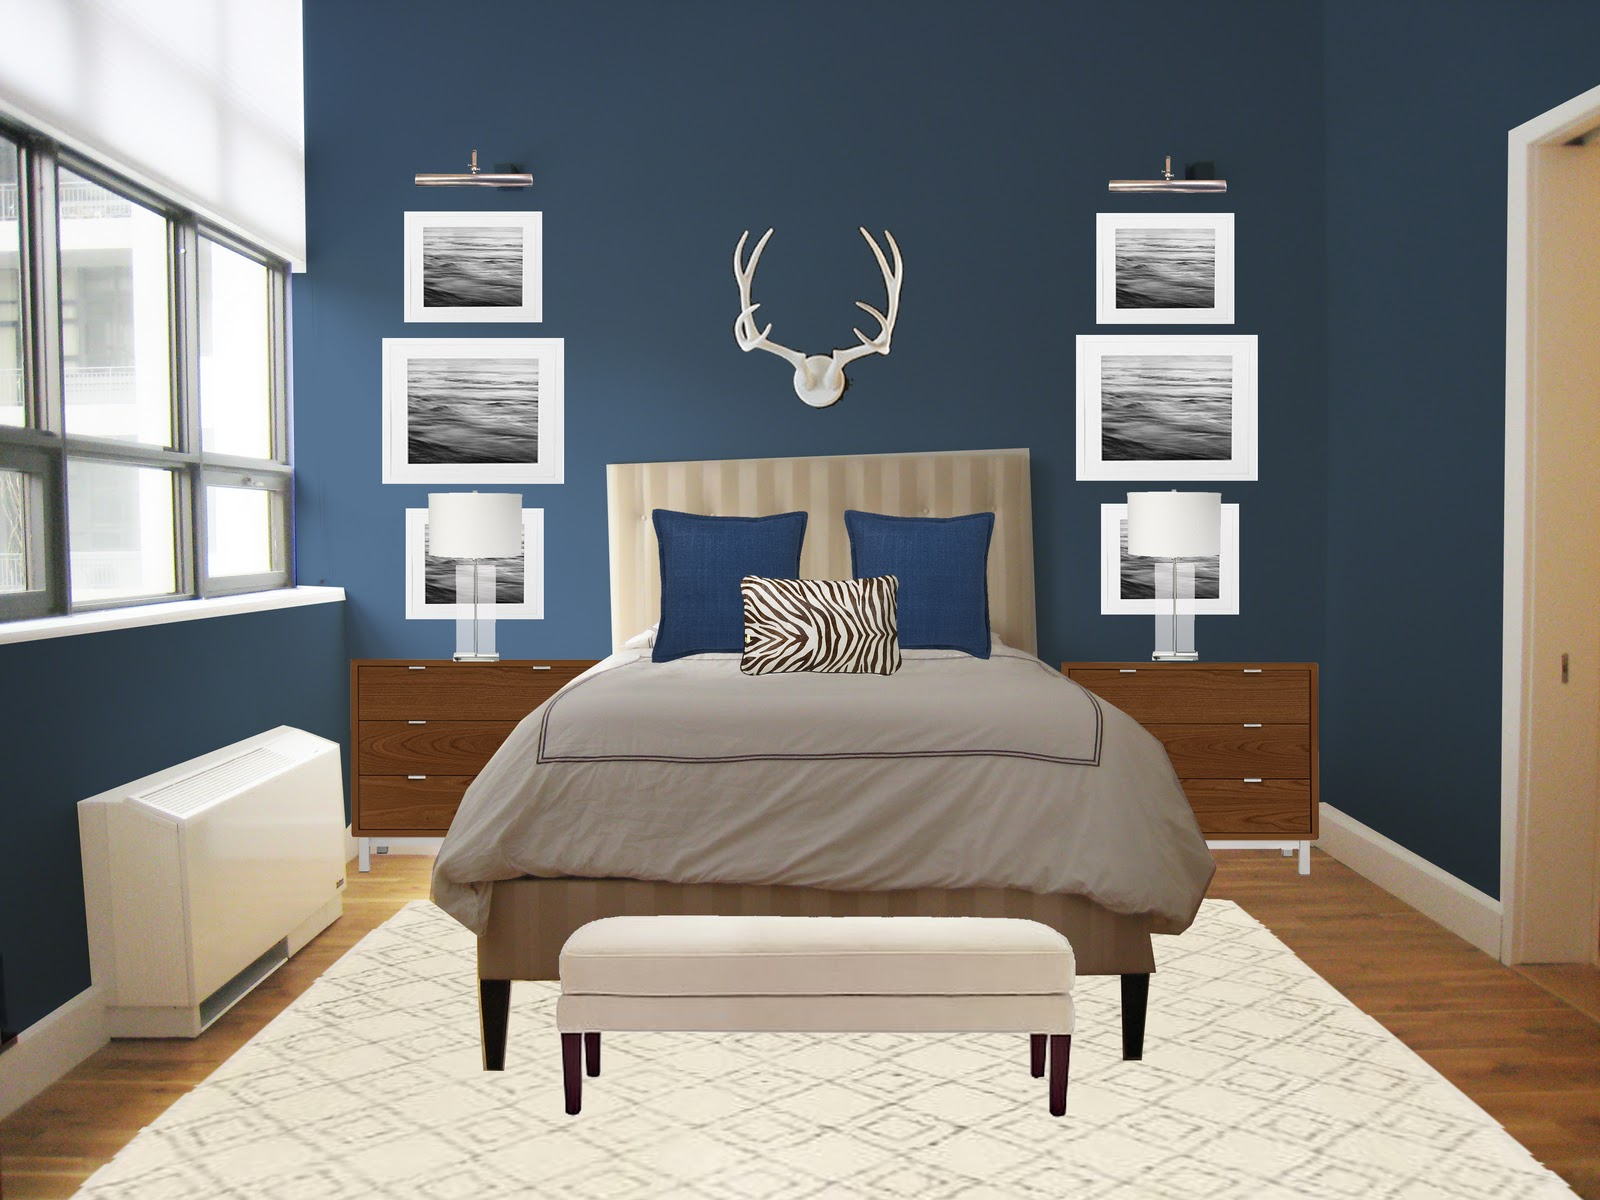 Bedroom 25 Bedroom Design With Beautiful Color Schemes throughout sizing 1600 X 1200